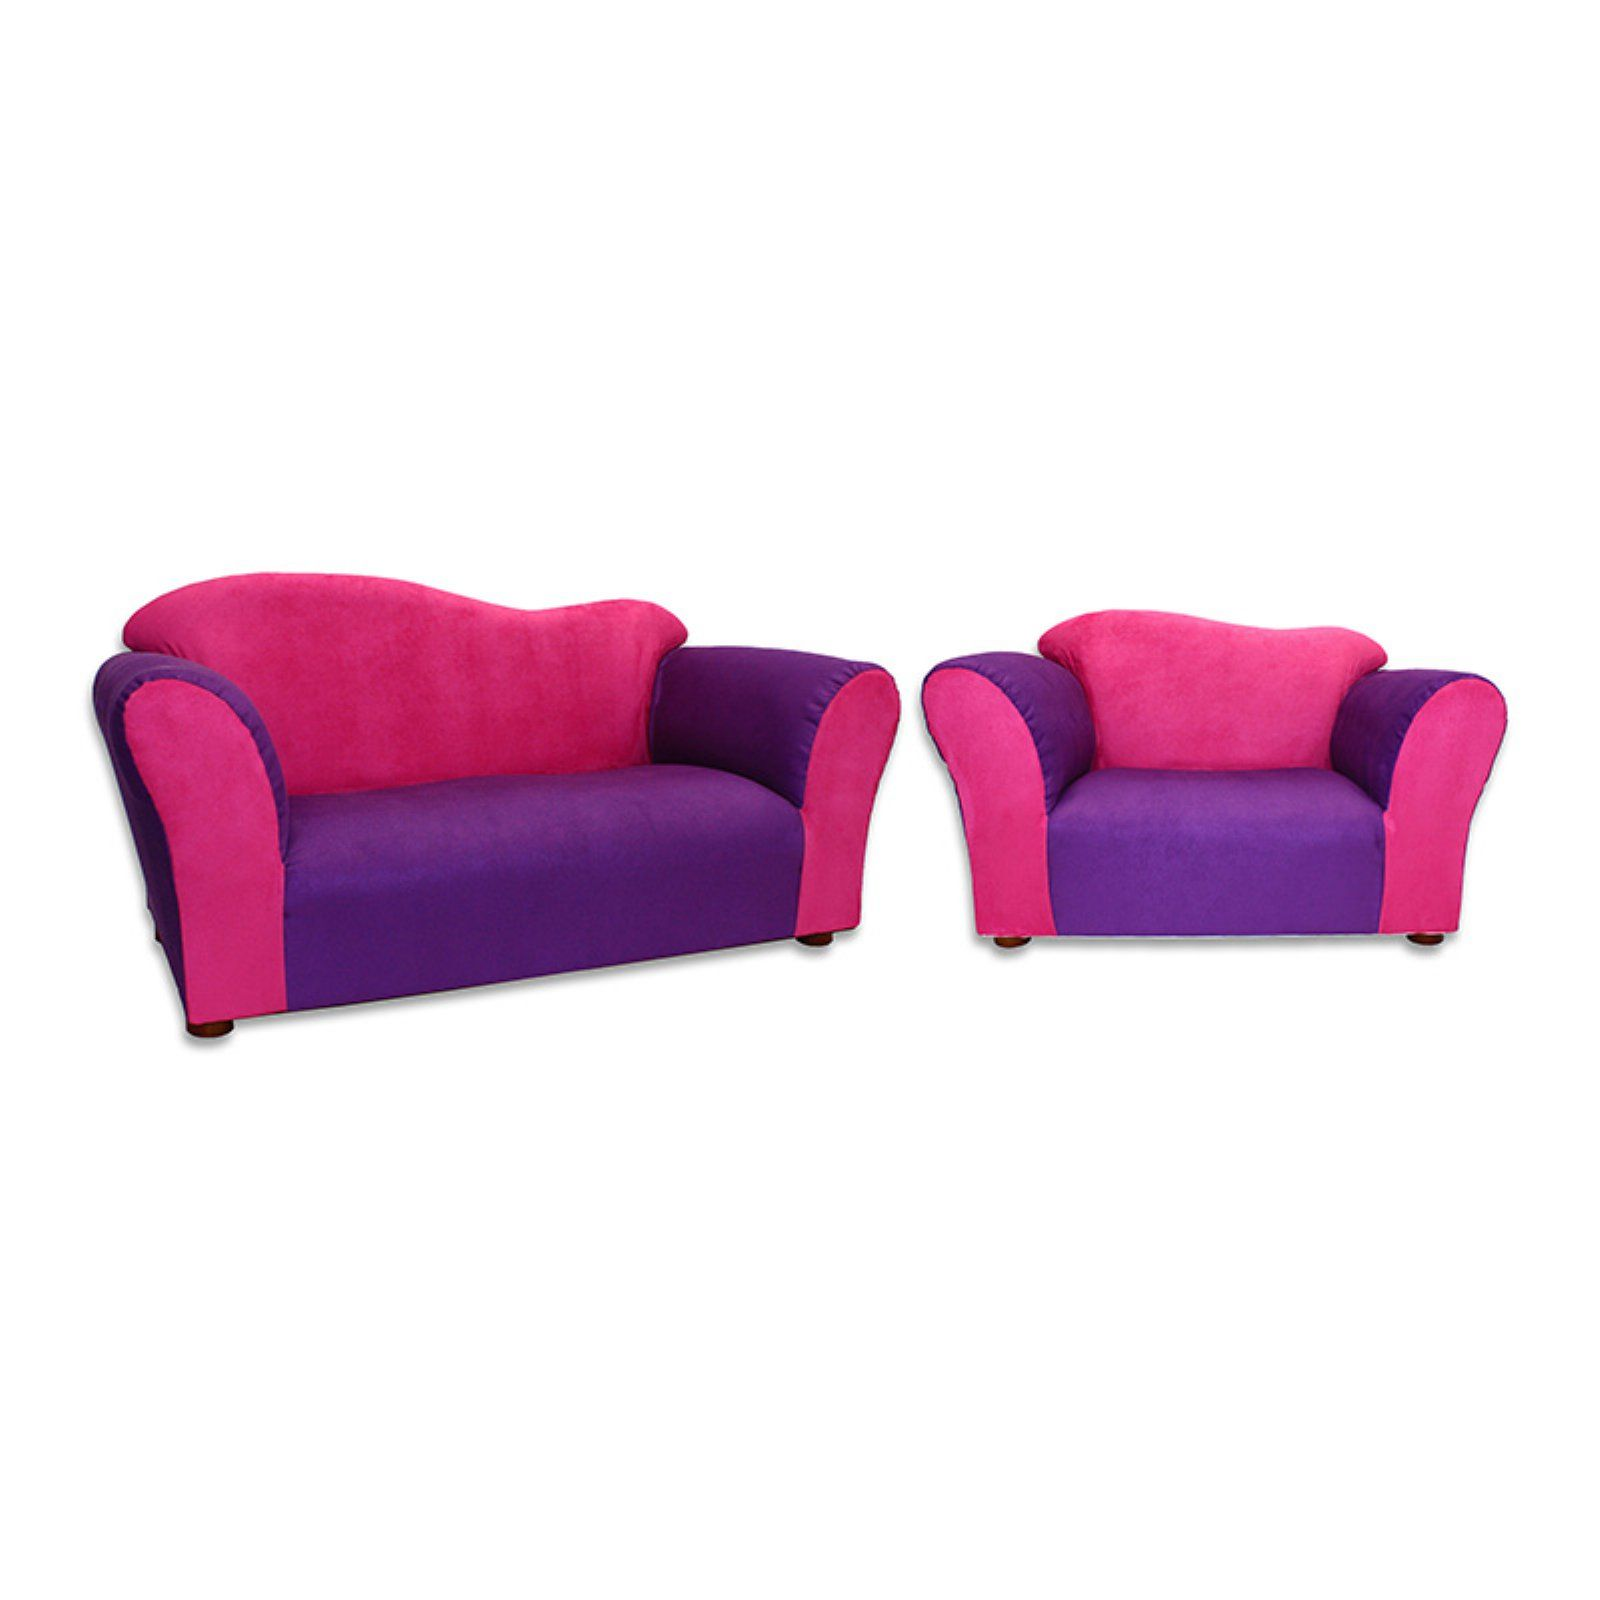 Remarkable Keet Wave Sofa And Chair Set Pink And Purple Products In Pdpeps Interior Chair Design Pdpepsorg